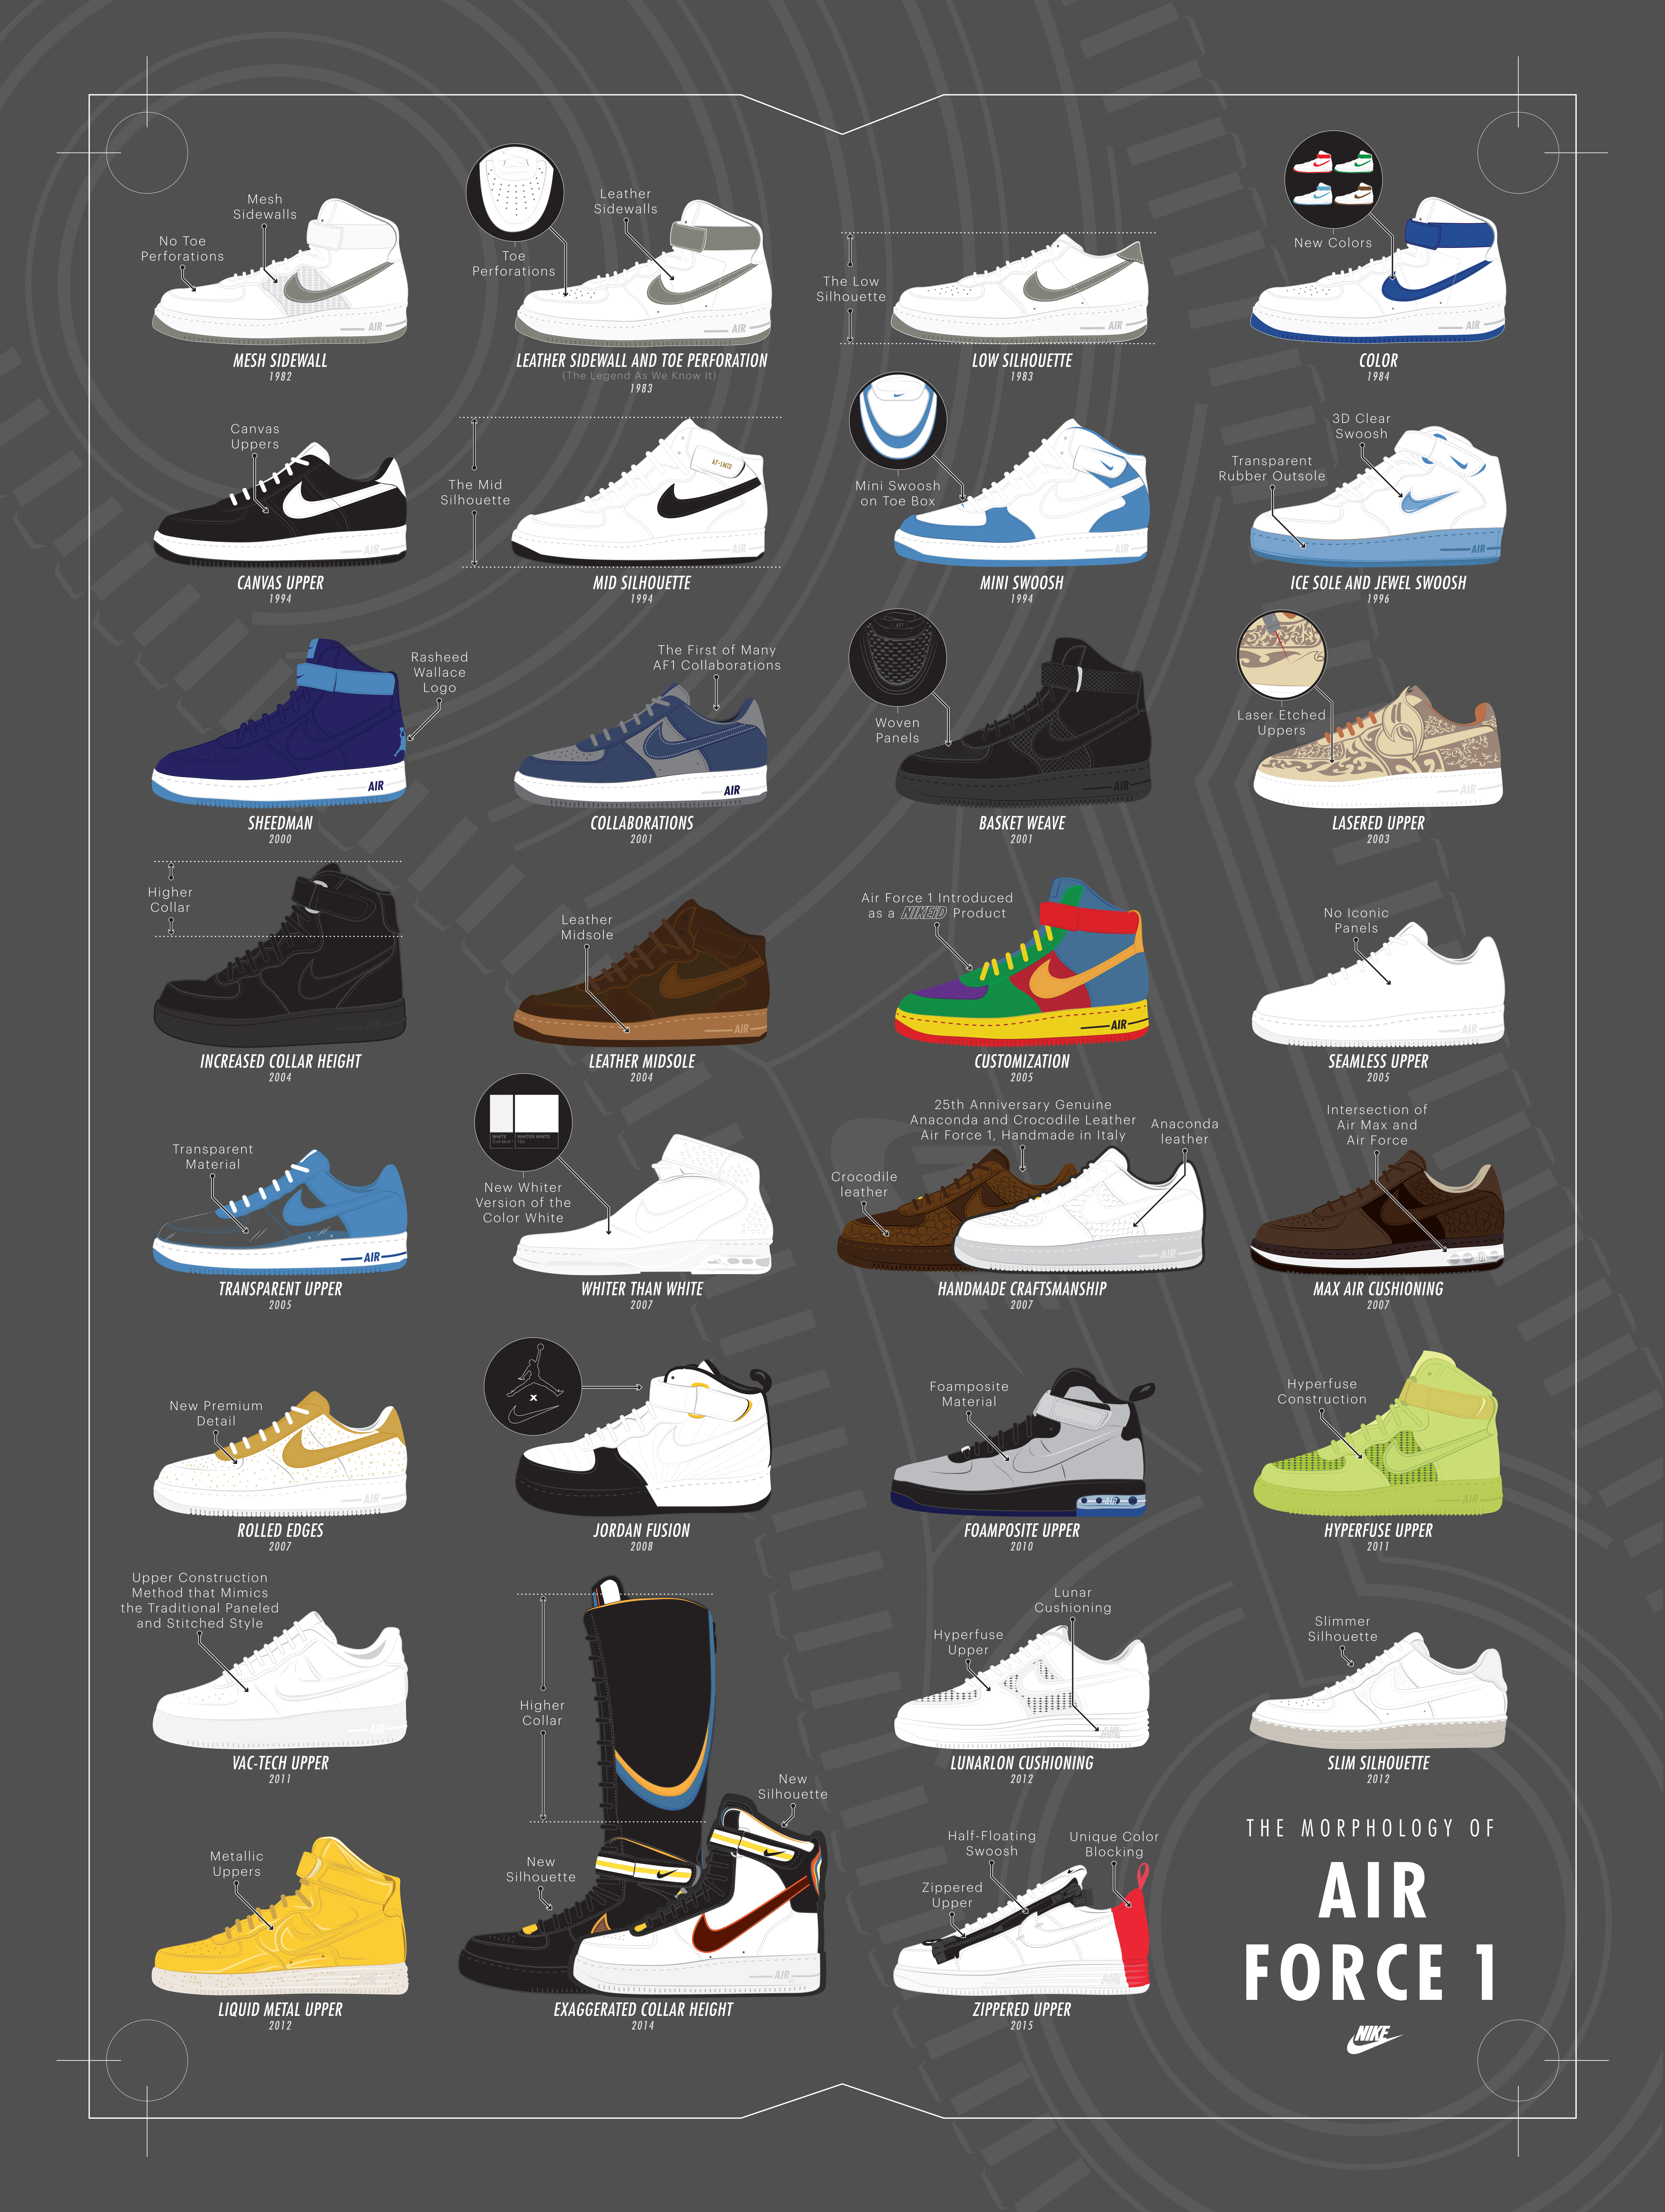 Morphology of Nike Air Force 1